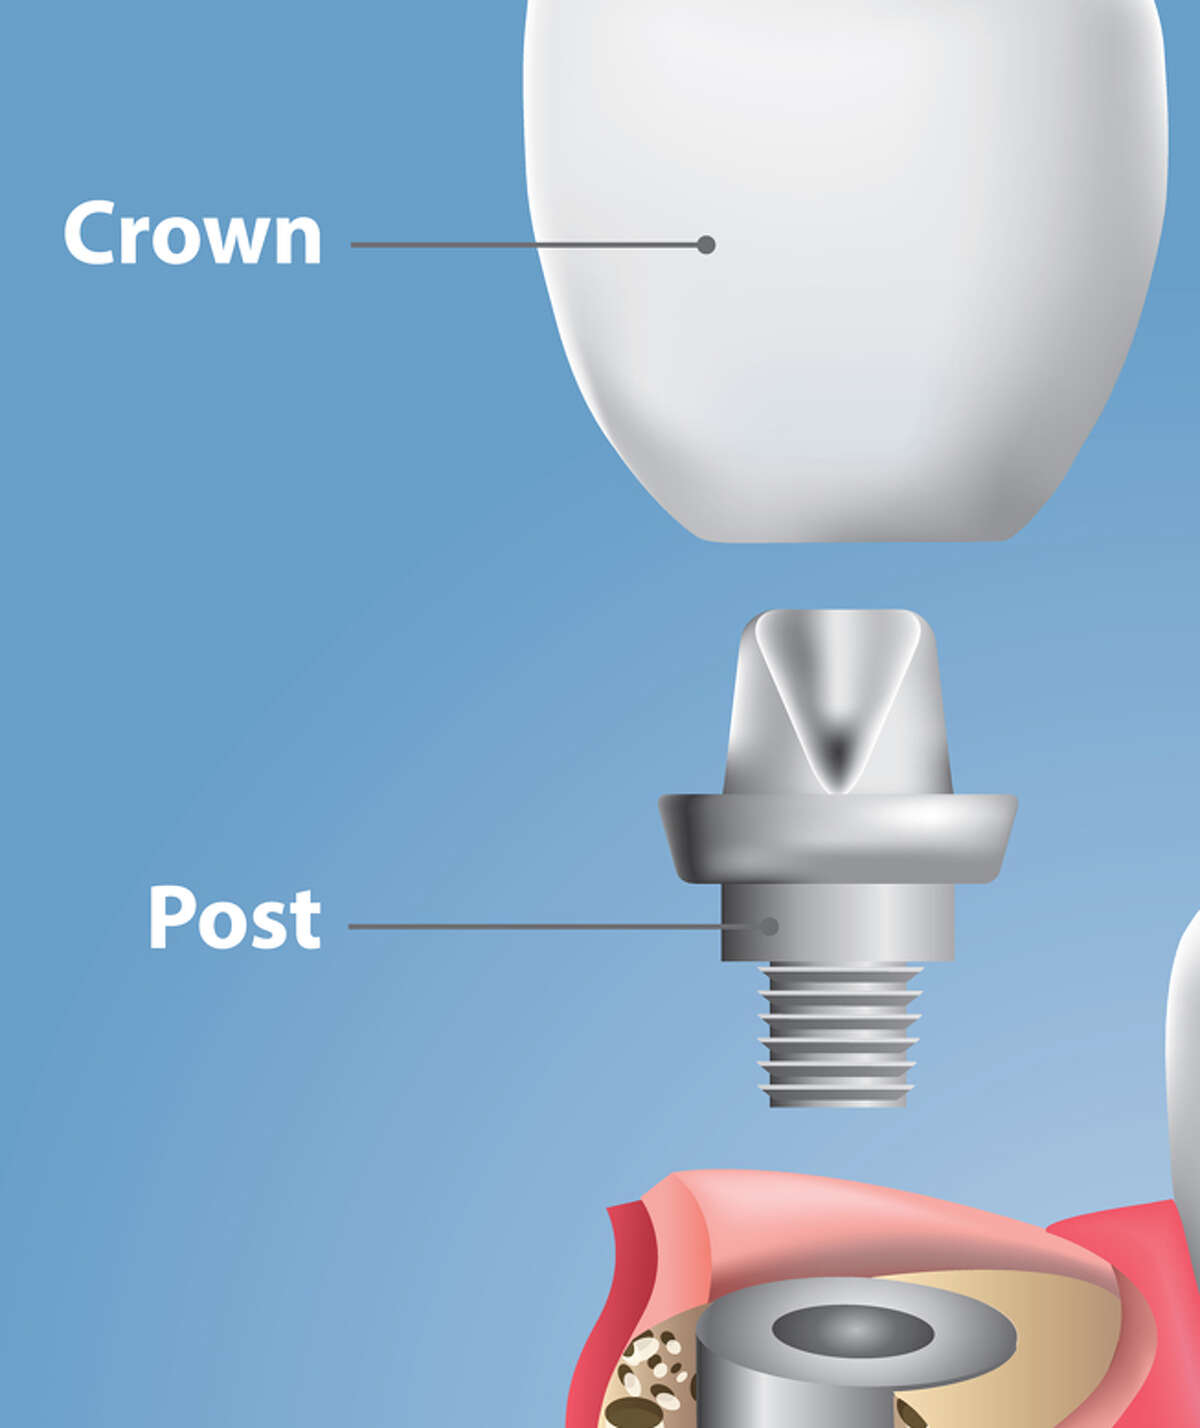 Although implants have a success rate of more than 95 percent, there is always a risk for complications and infection, including injury to the nerves, sinuses or nasal cavity. In some cases, the implant fails to fuse to the jawbone, or can break or crack.